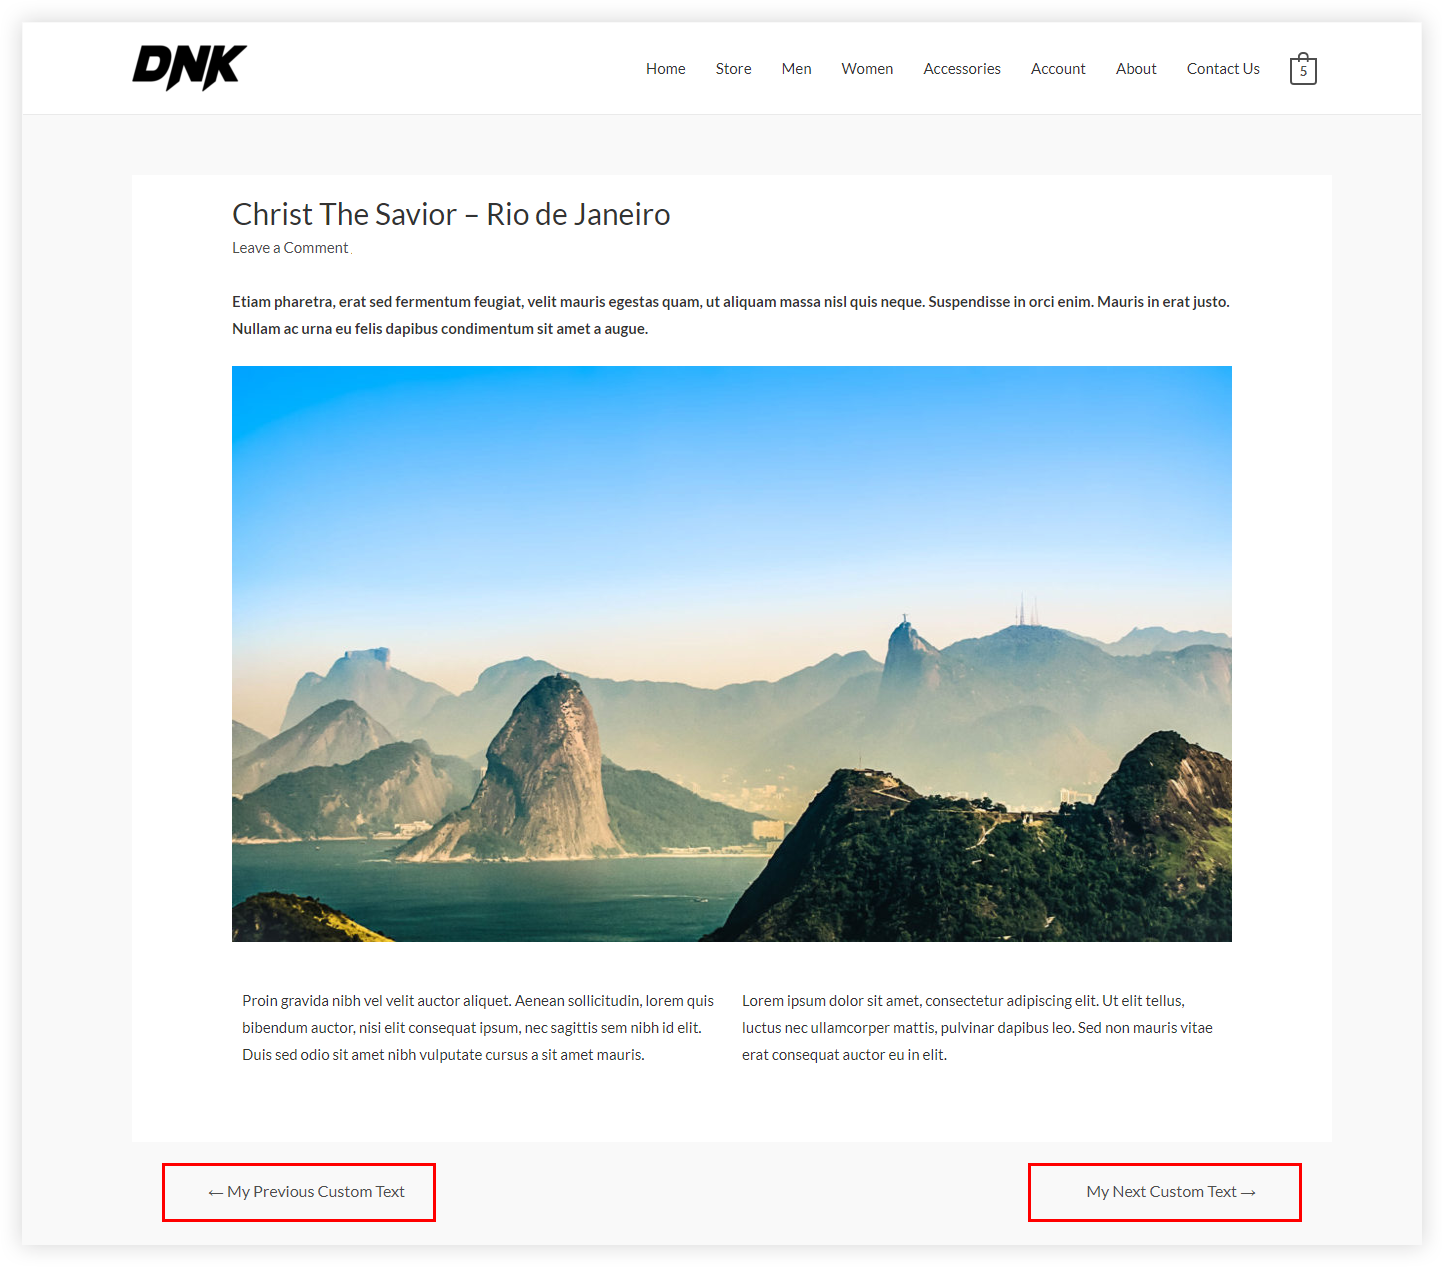 How to Change Previous and Next Link Text from a Single Blog Post